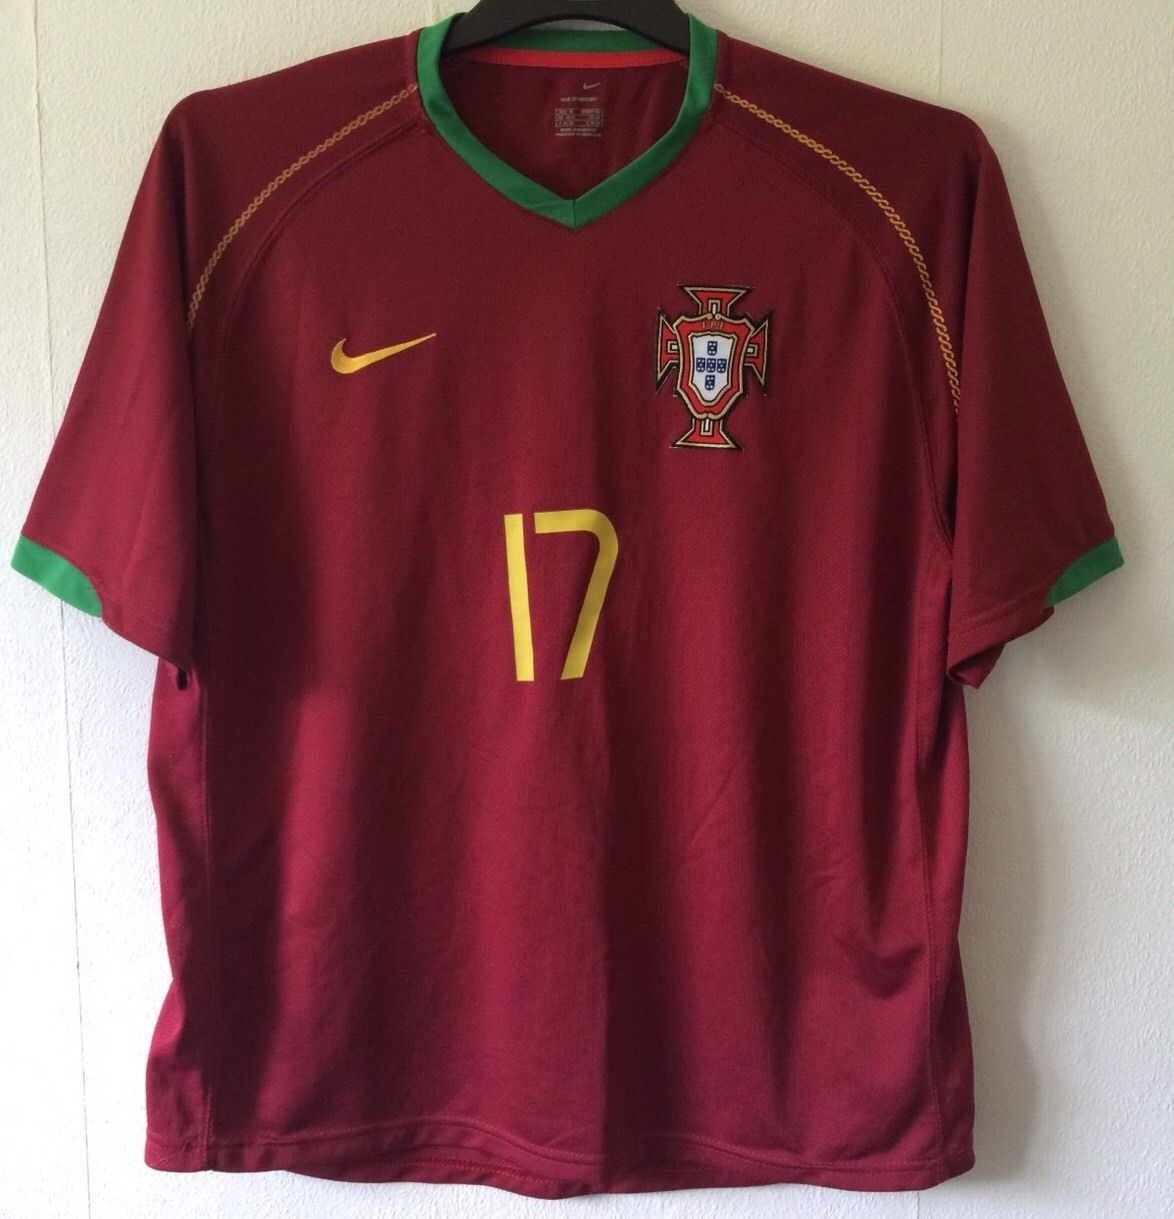 best service d50a0 c4306 Portugal Cristiano Ronaldo 17 Football Shirt 2006/08 Adults Medium Nike